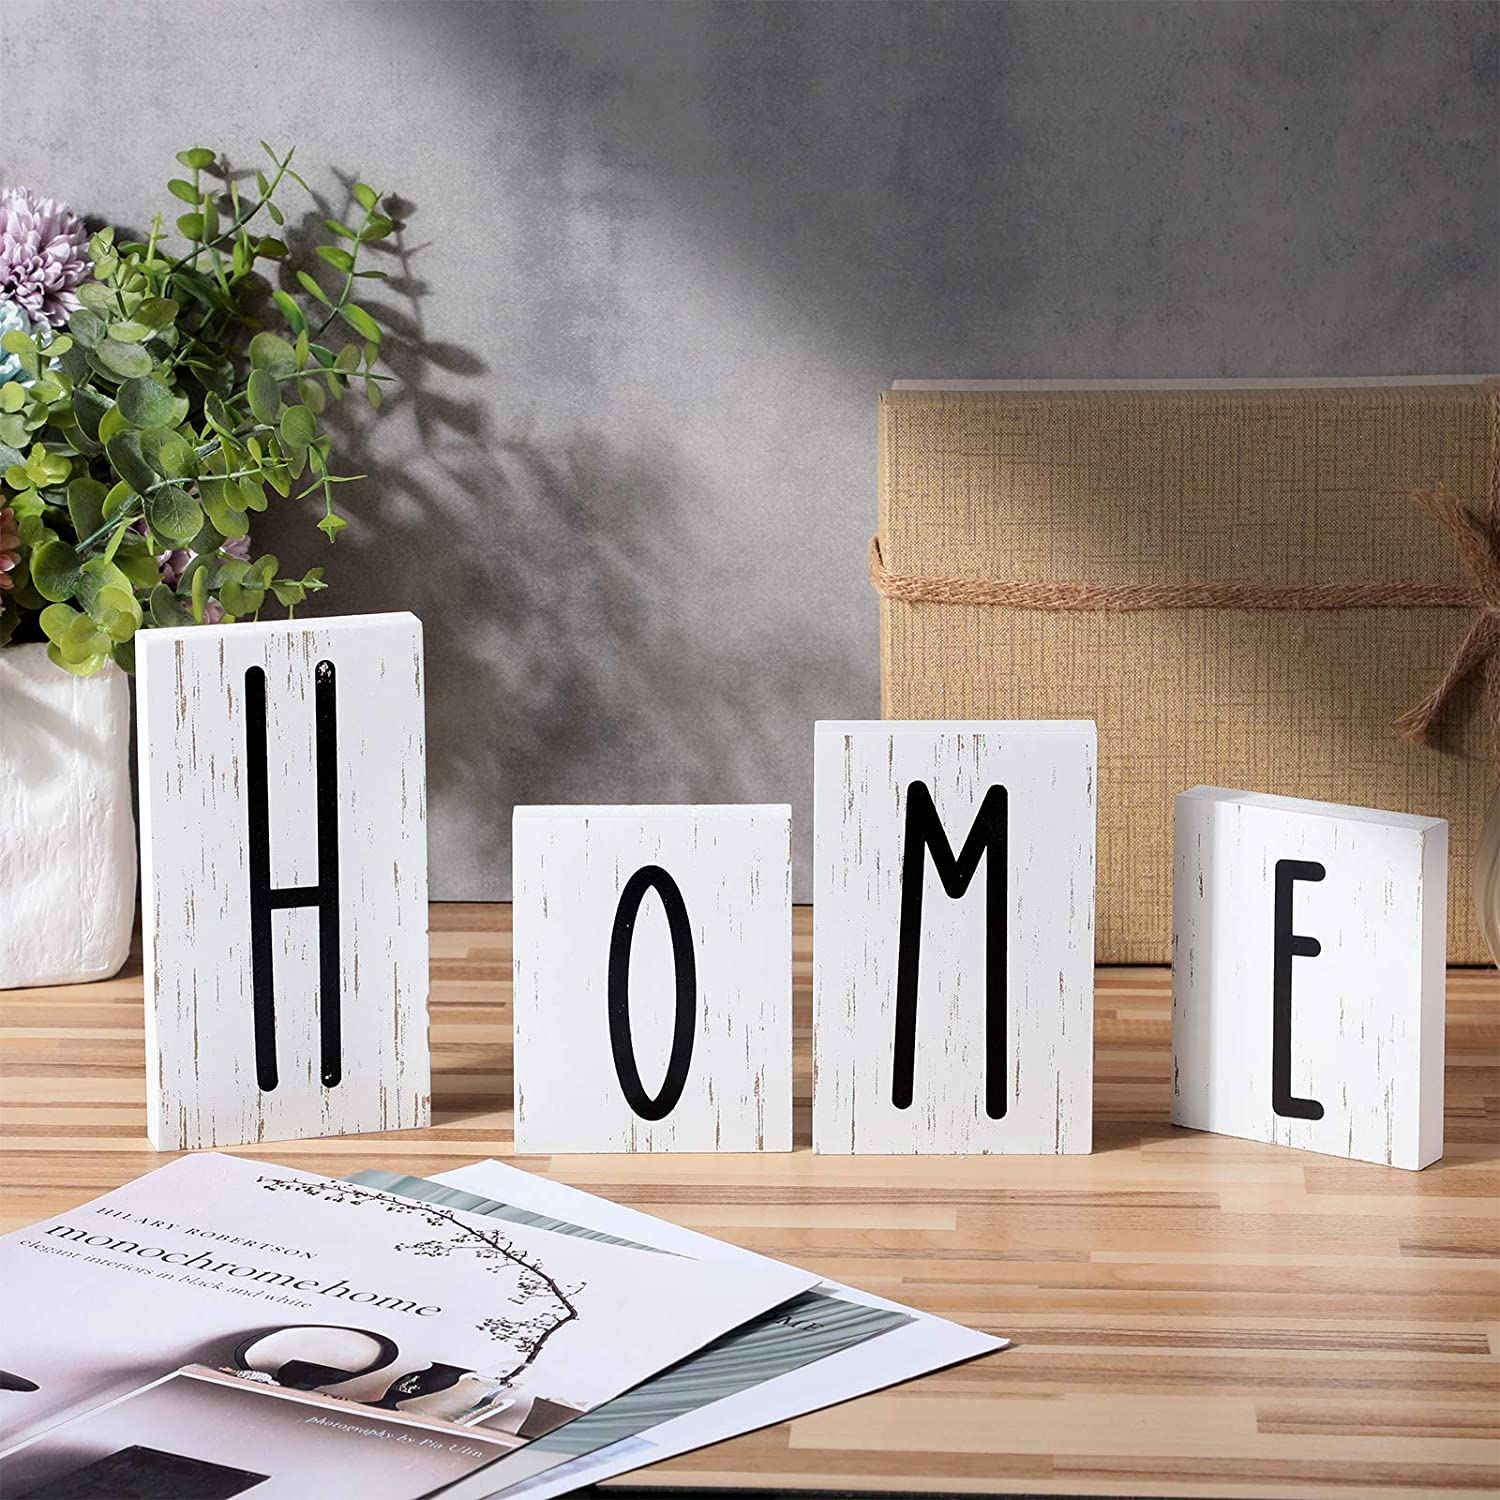 4 Pieces Home Sign Table Wood Block Freestanding Wooden Sign Decorations Home Letter Tabletop Wood Block for Home Living Room Party Table Decor Wall Decor